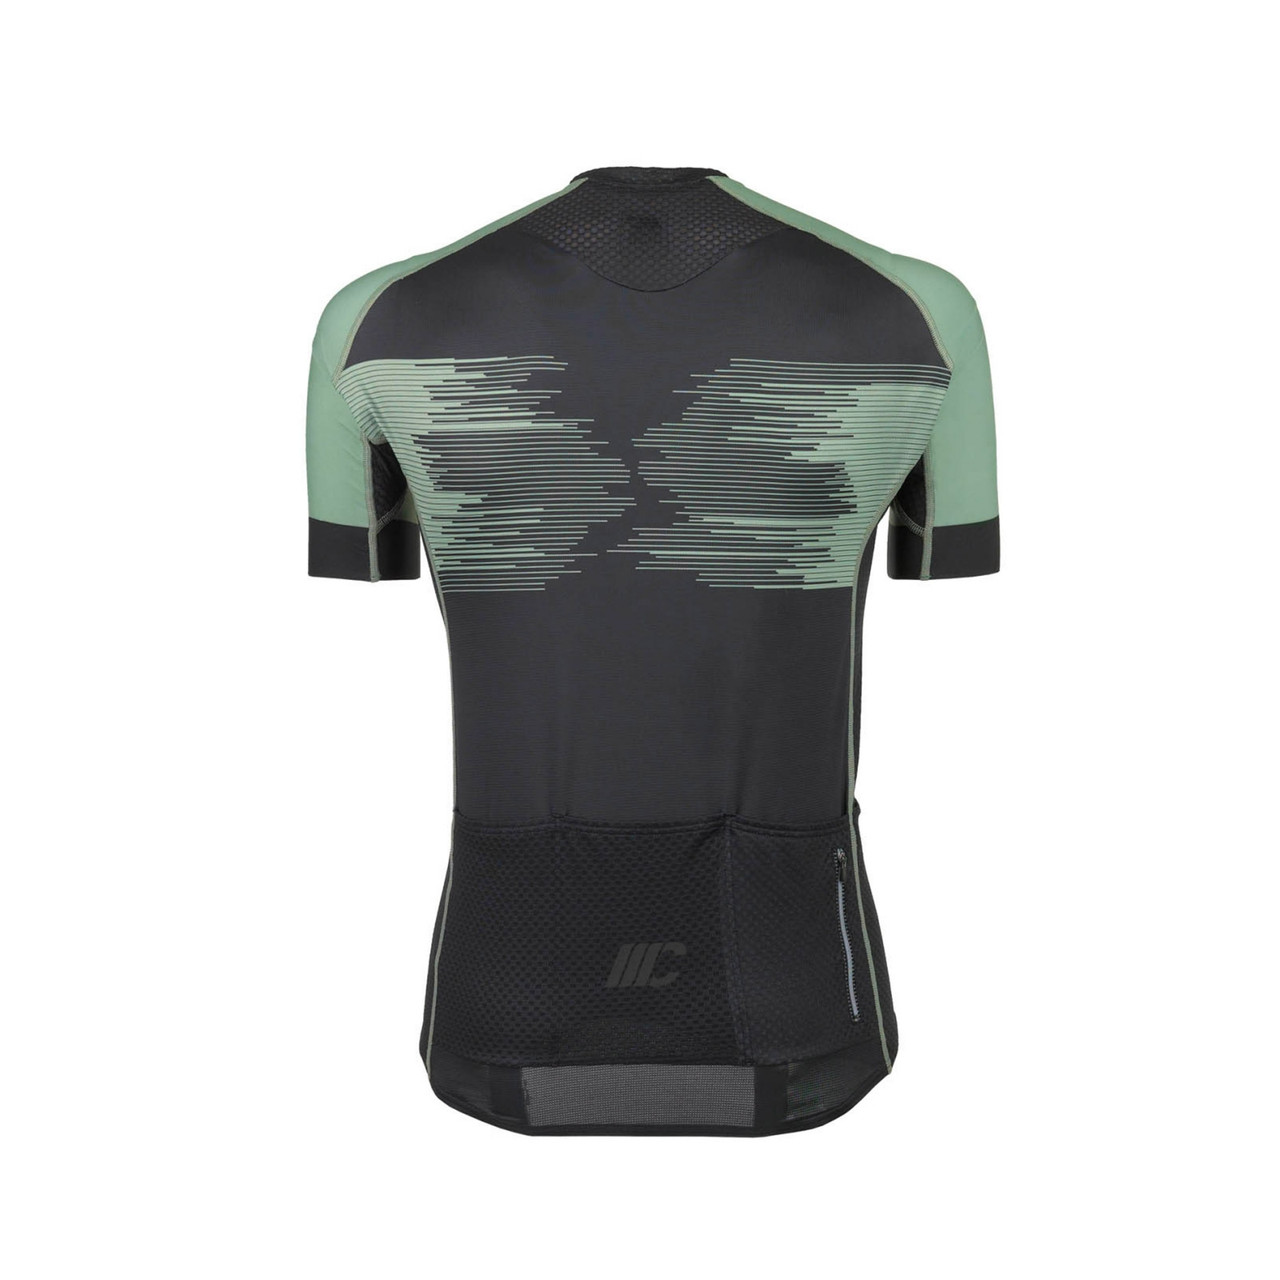 MCipollini Sprint Frequenza Green Jersey Rear